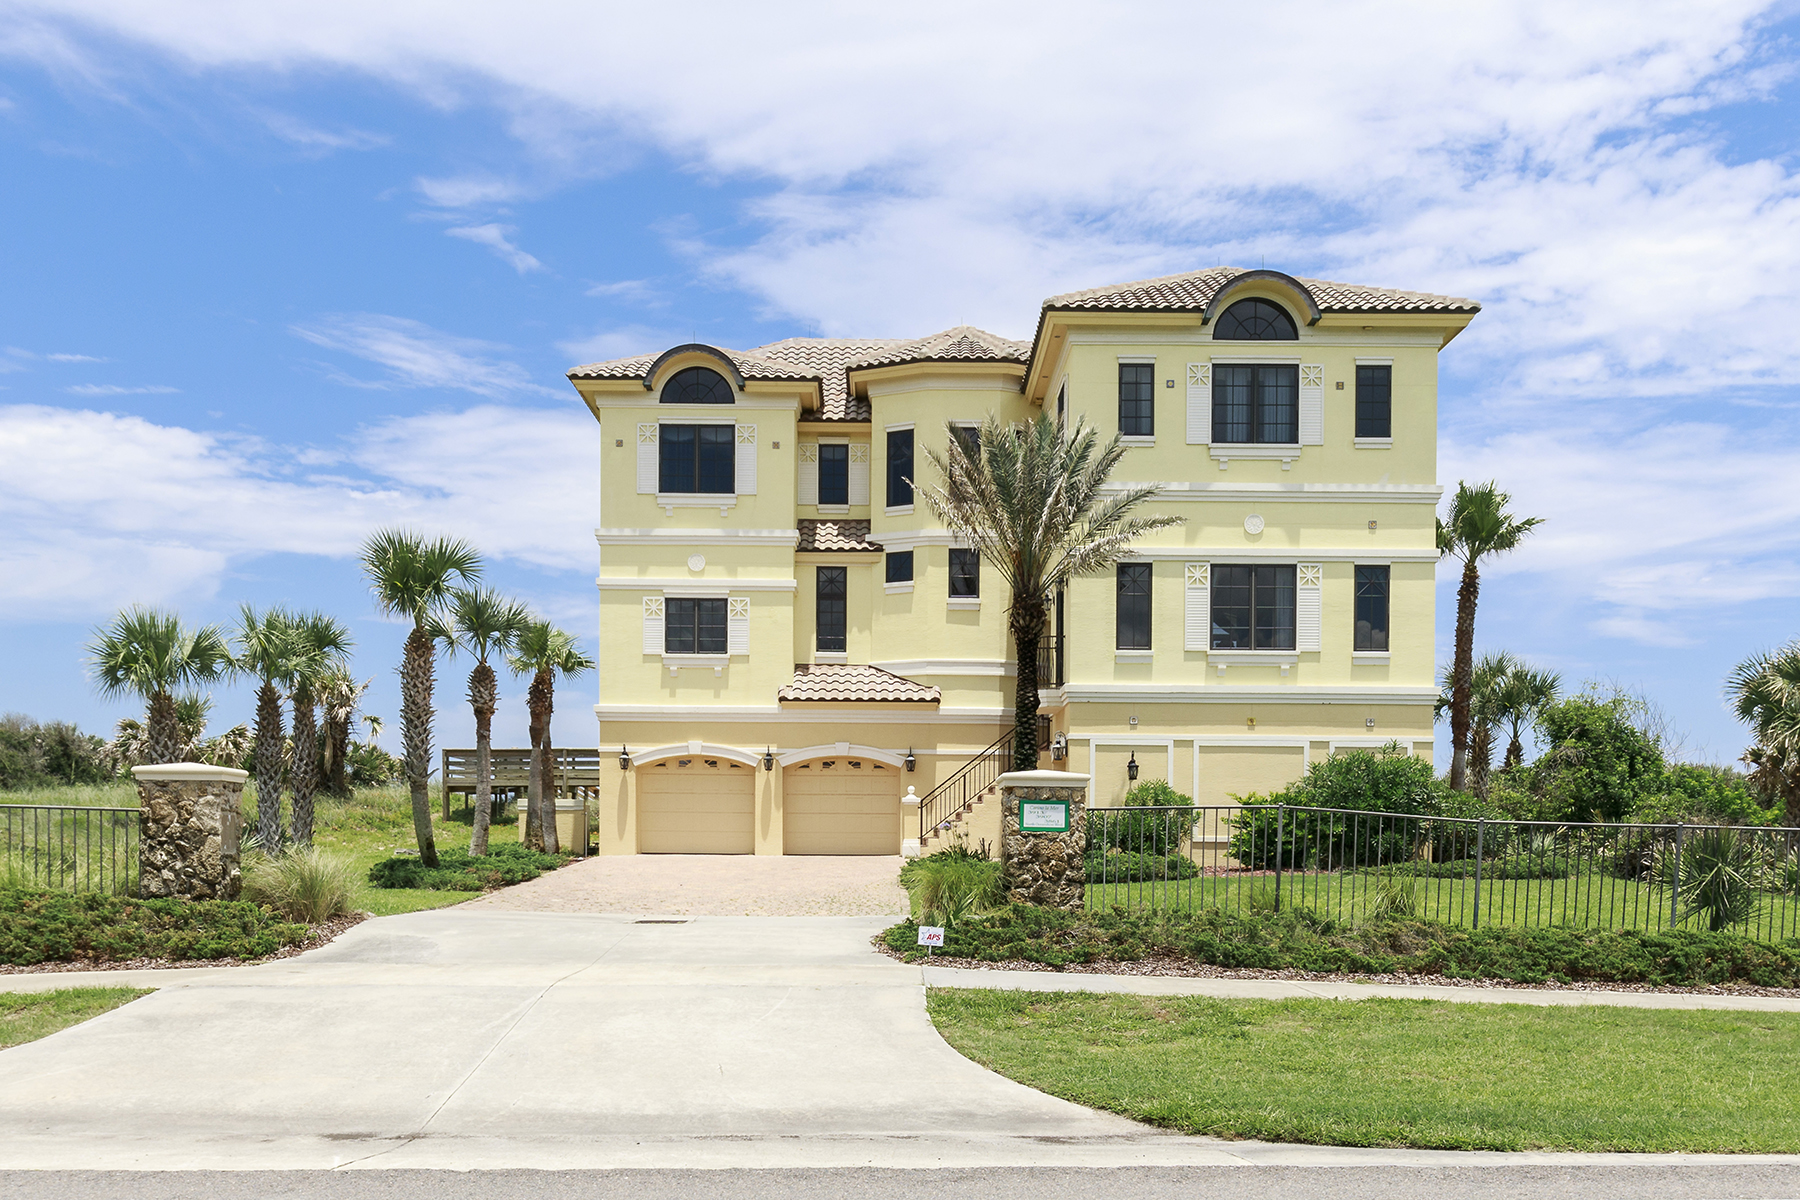 Single Family Home for Sale at 3907 N Ocean Shore Blvd , Palm Coast, FL 32137 3907 N Ocean Shore Blvd Palm Coast, Florida 32137 United States